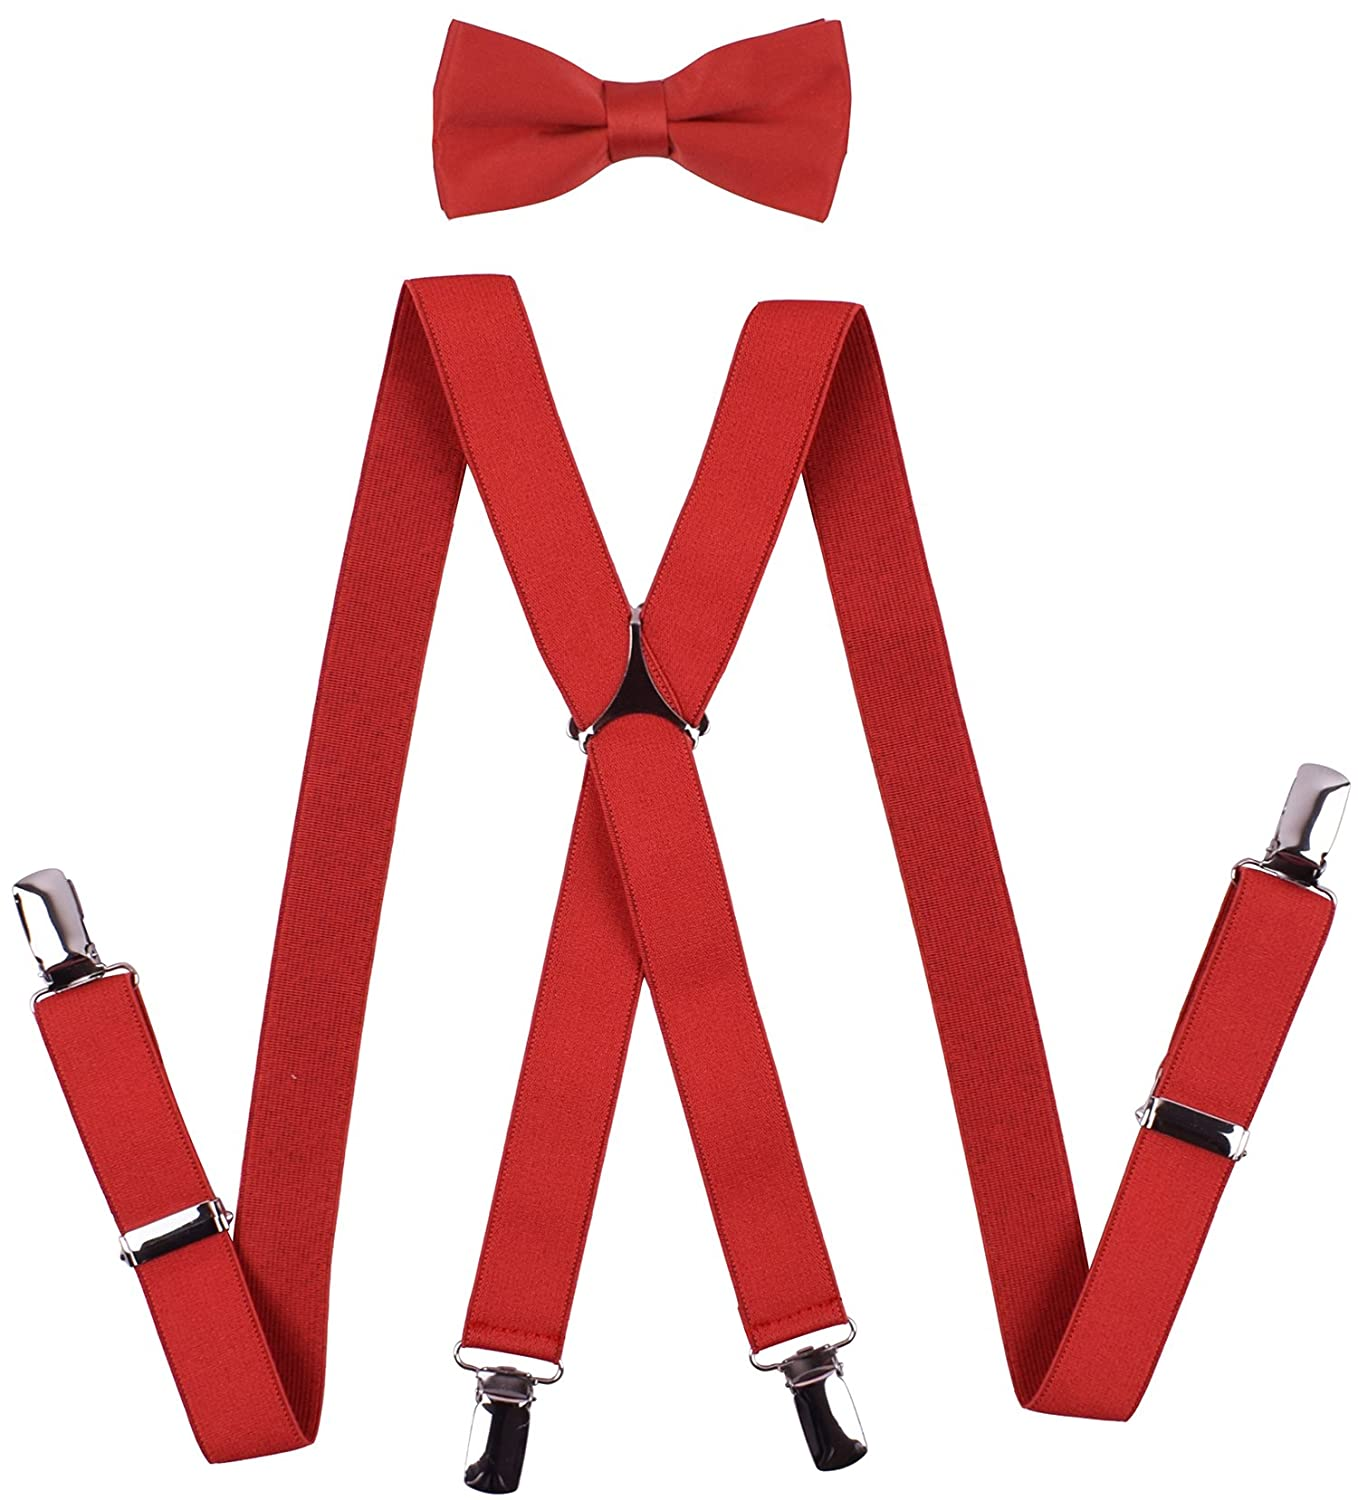 BODY STRENTH Mens Suspenders and Bow Tie Set X Shape Adjustable